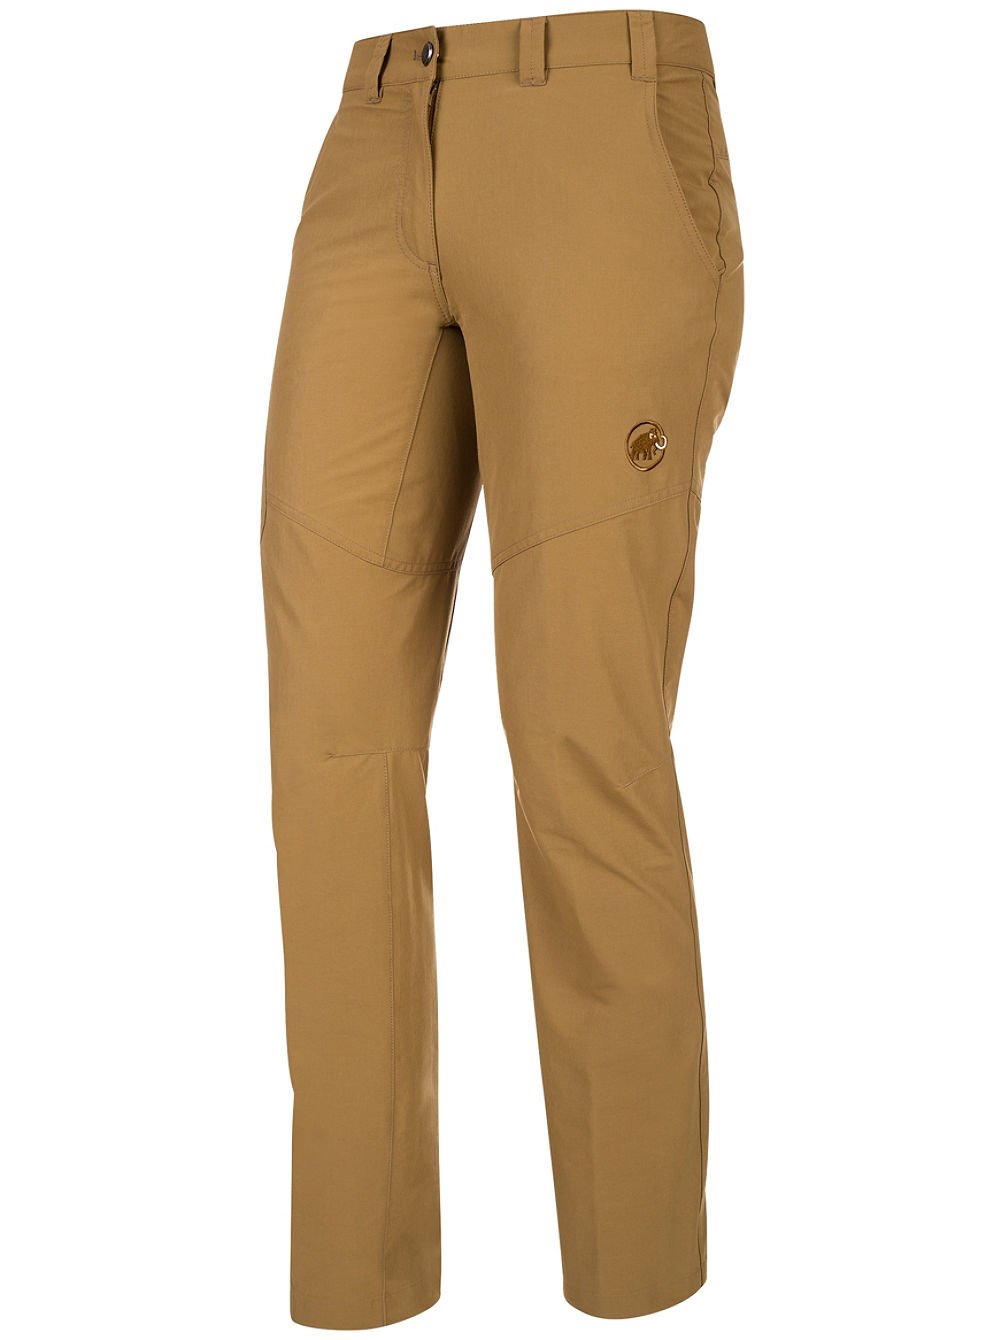 Hiking Outdoor Pants